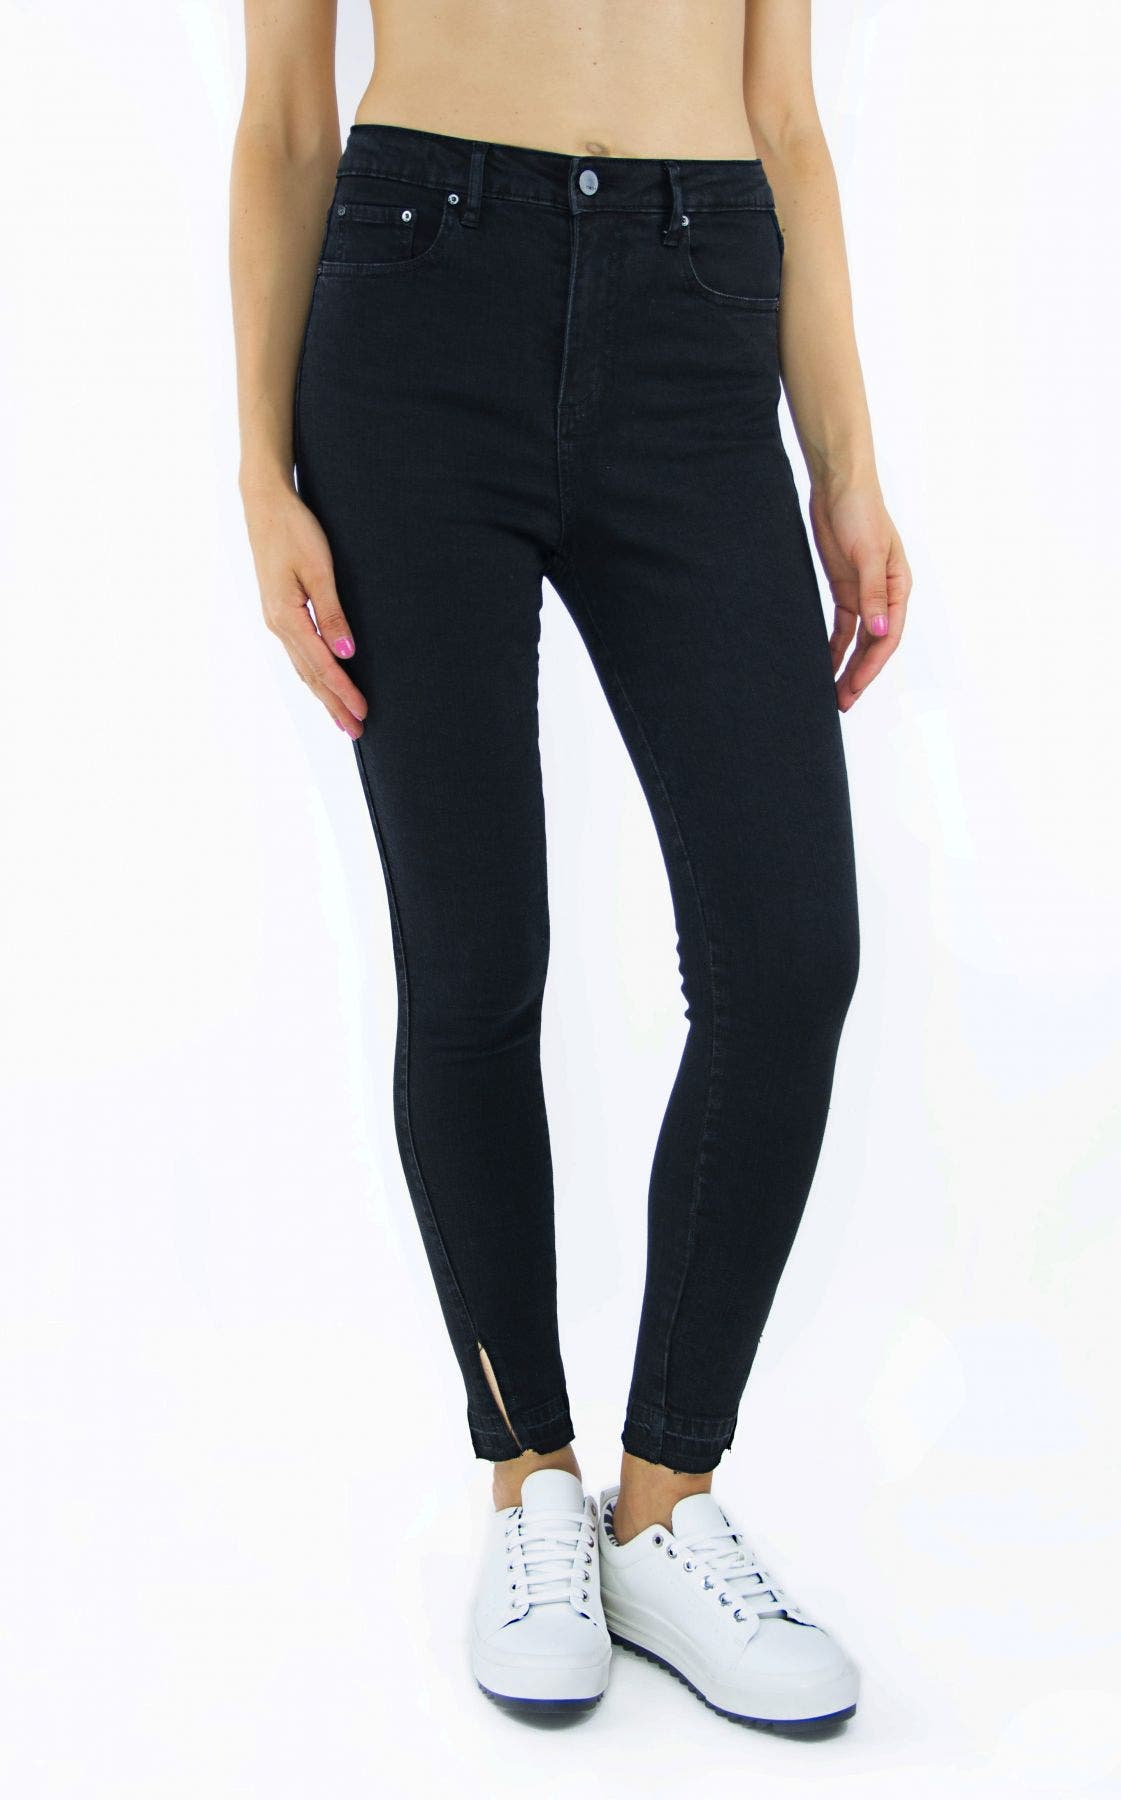 Tractr Jeans Ultra High-Rise Ankle Crop Skinny